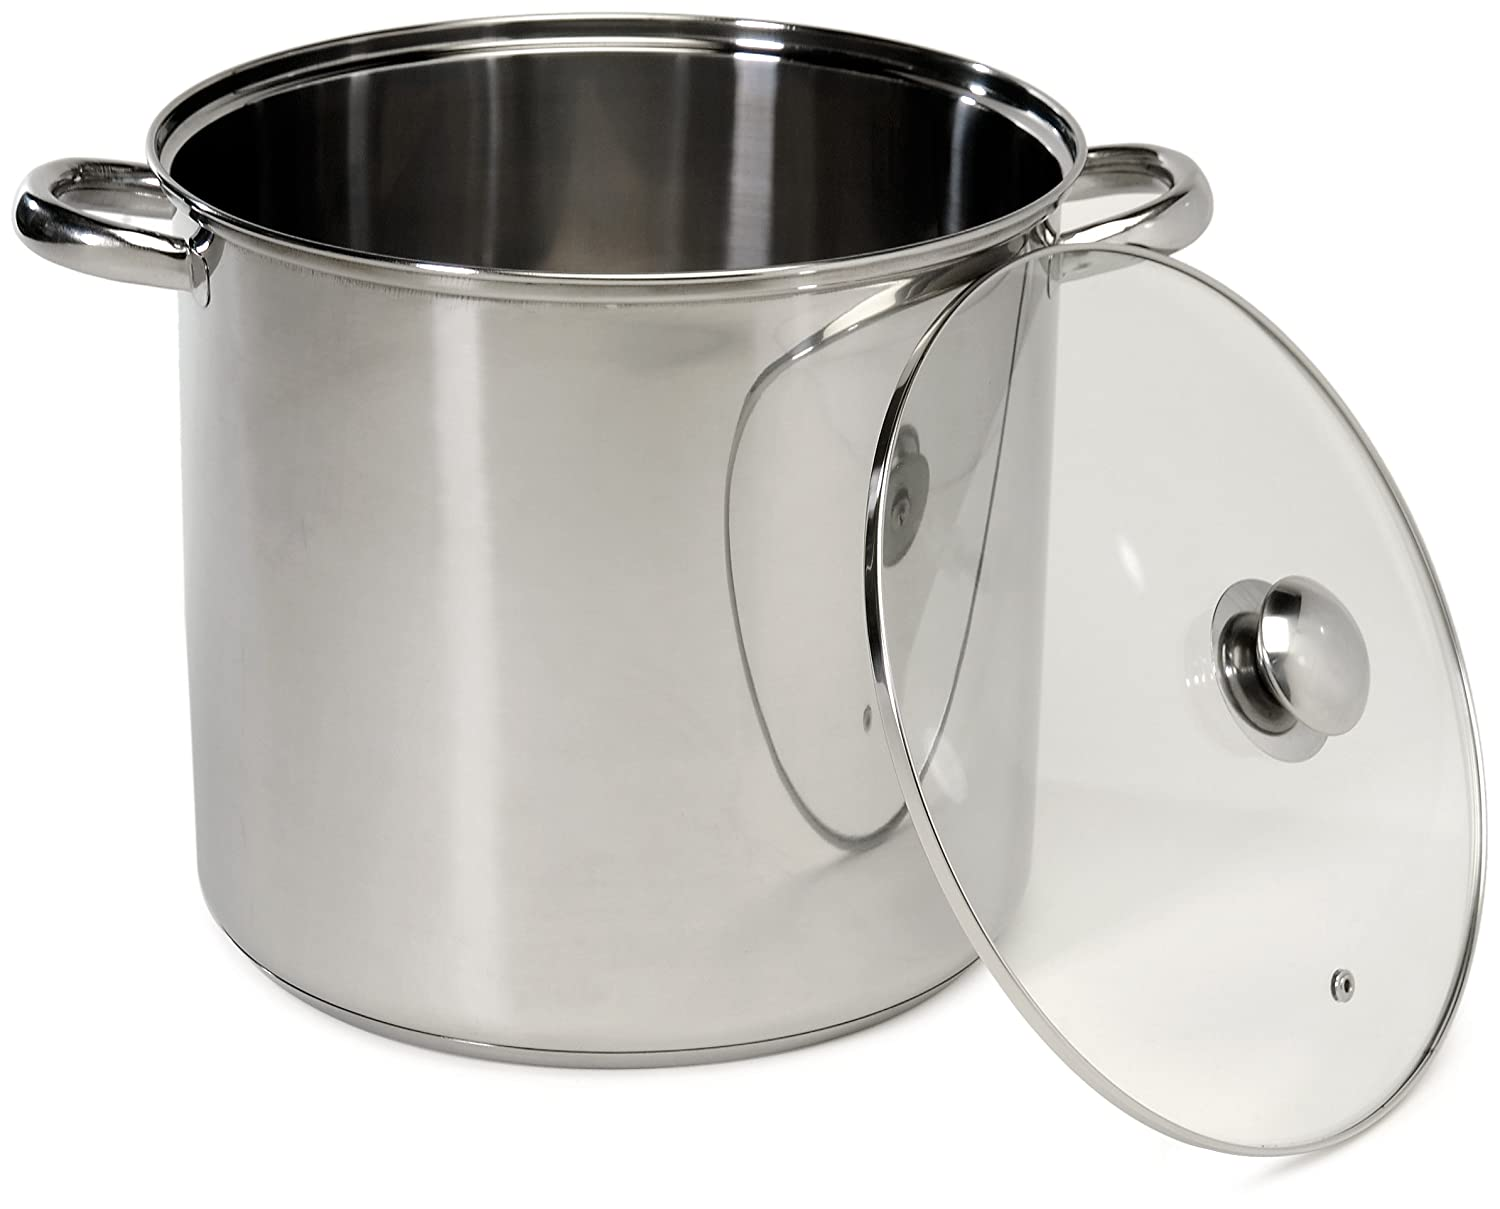 Excelsteel 16 Quart Stainless Steel Stockpot With Encapsulated Base, 4.5 stars on Amazon